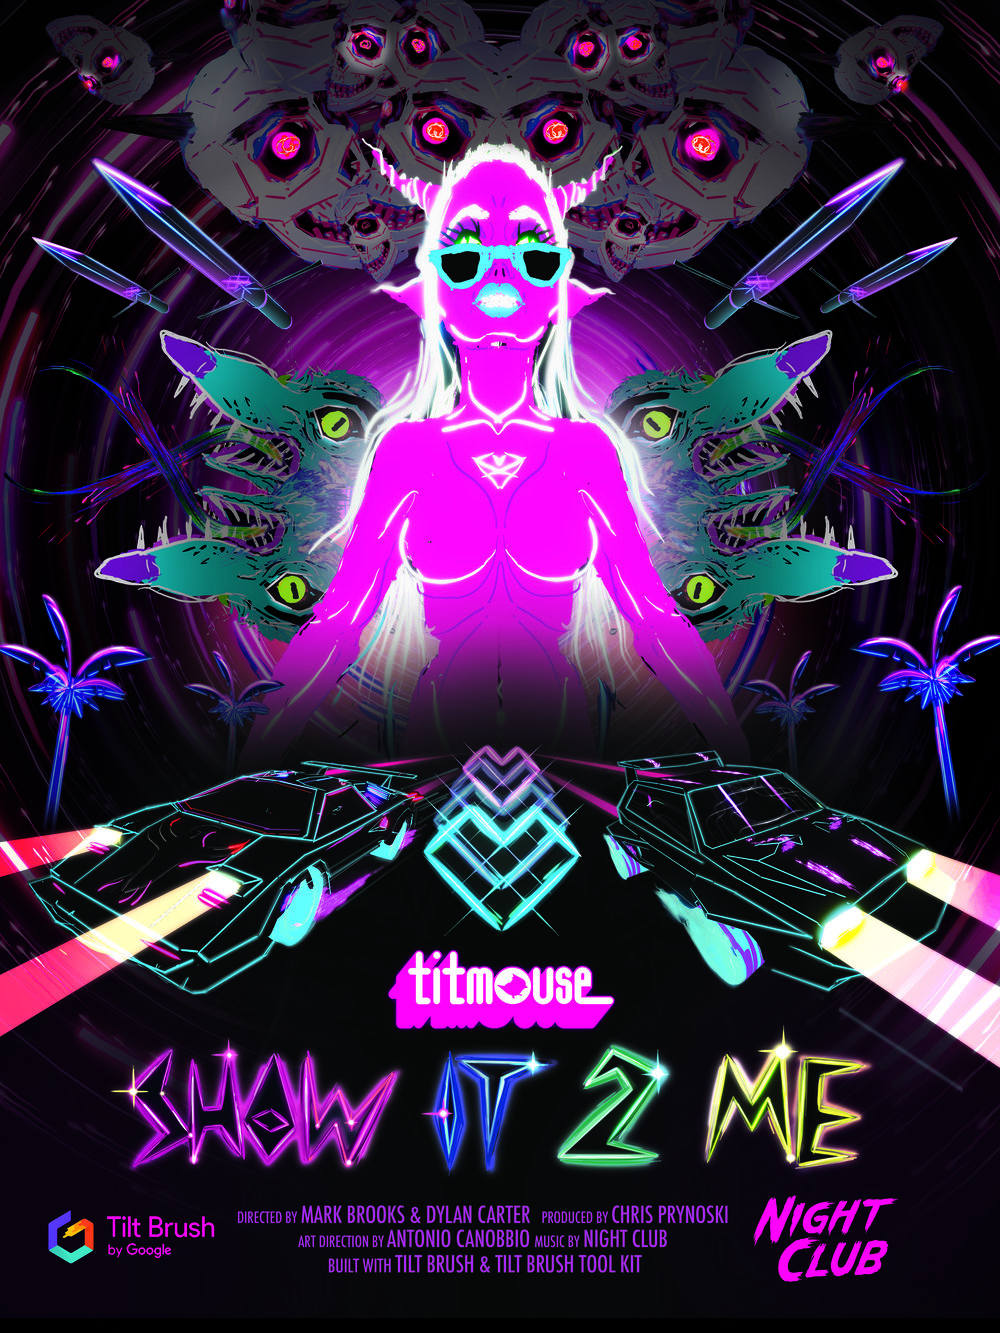 A psychedelic, interactive music video.  4 mins on HTC Vive.  All ages with parental consent for children under 13.